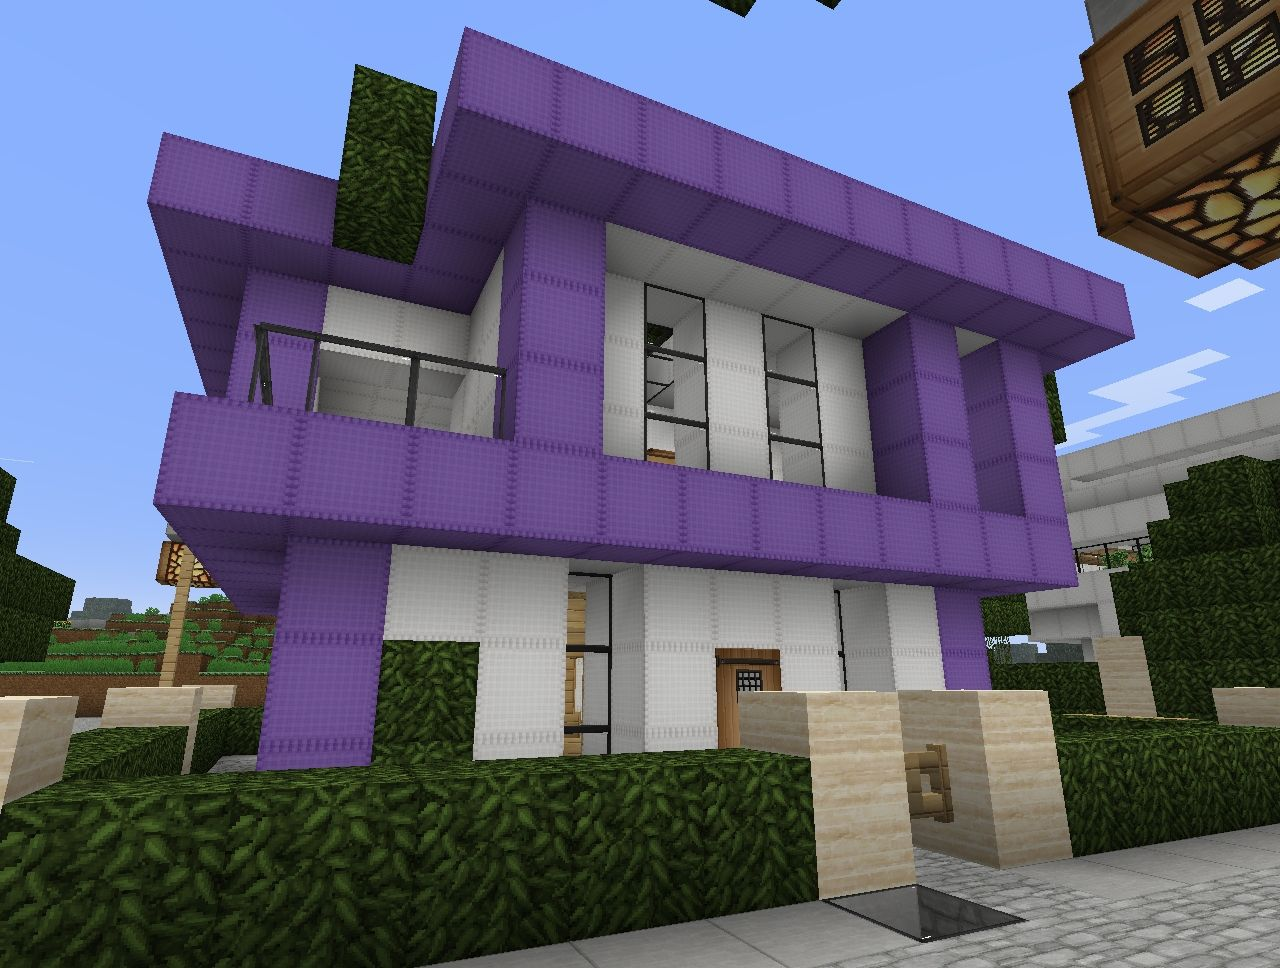 Modern house project v0 2 by ints12 minecraft project for Modern house projects